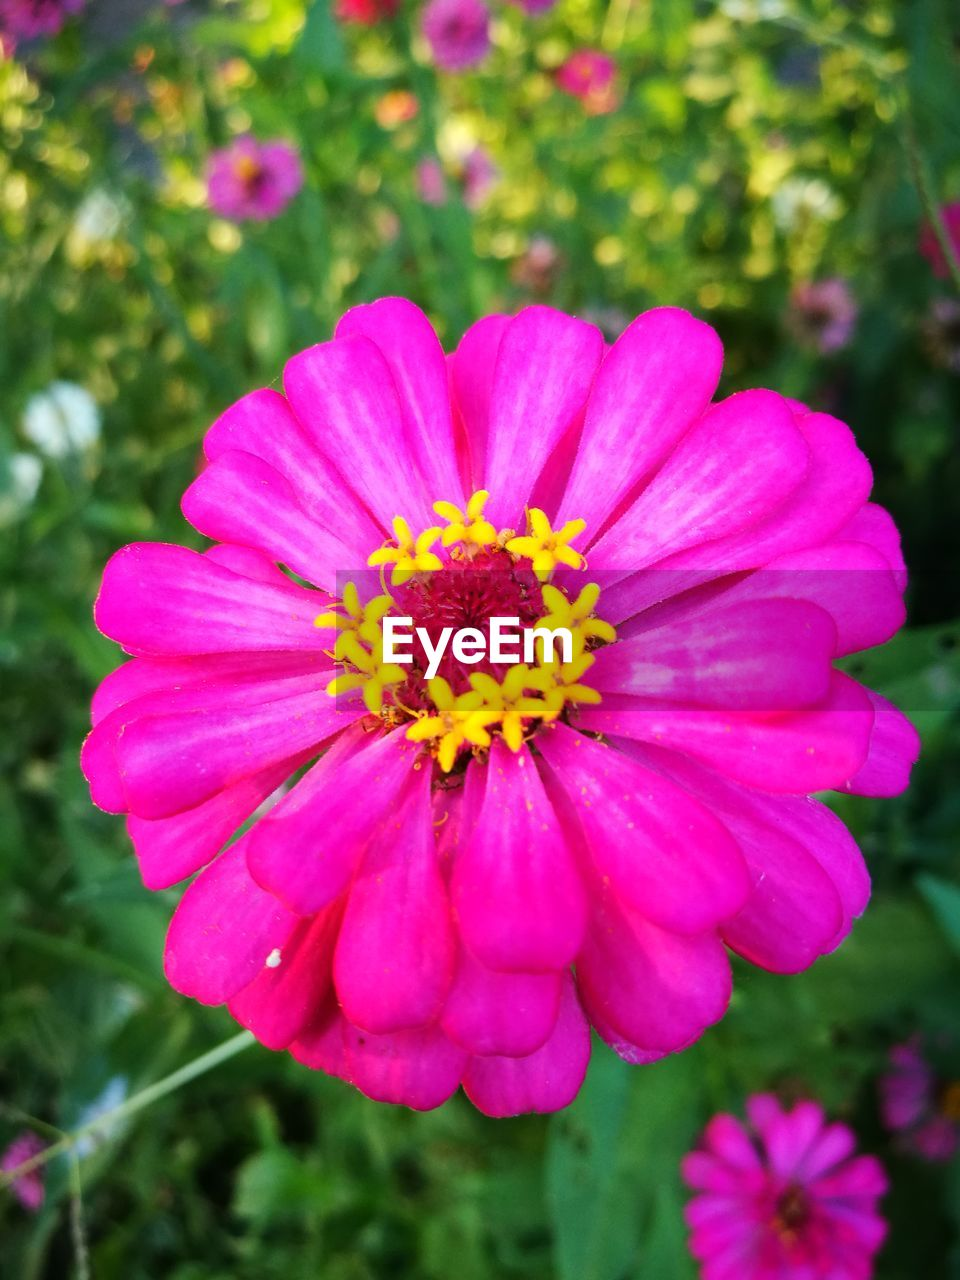 flower, petal, nature, beauty in nature, blooming, fragility, flower head, growth, plant, pink color, freshness, yellow, no people, outdoors, close-up, zinnia, day